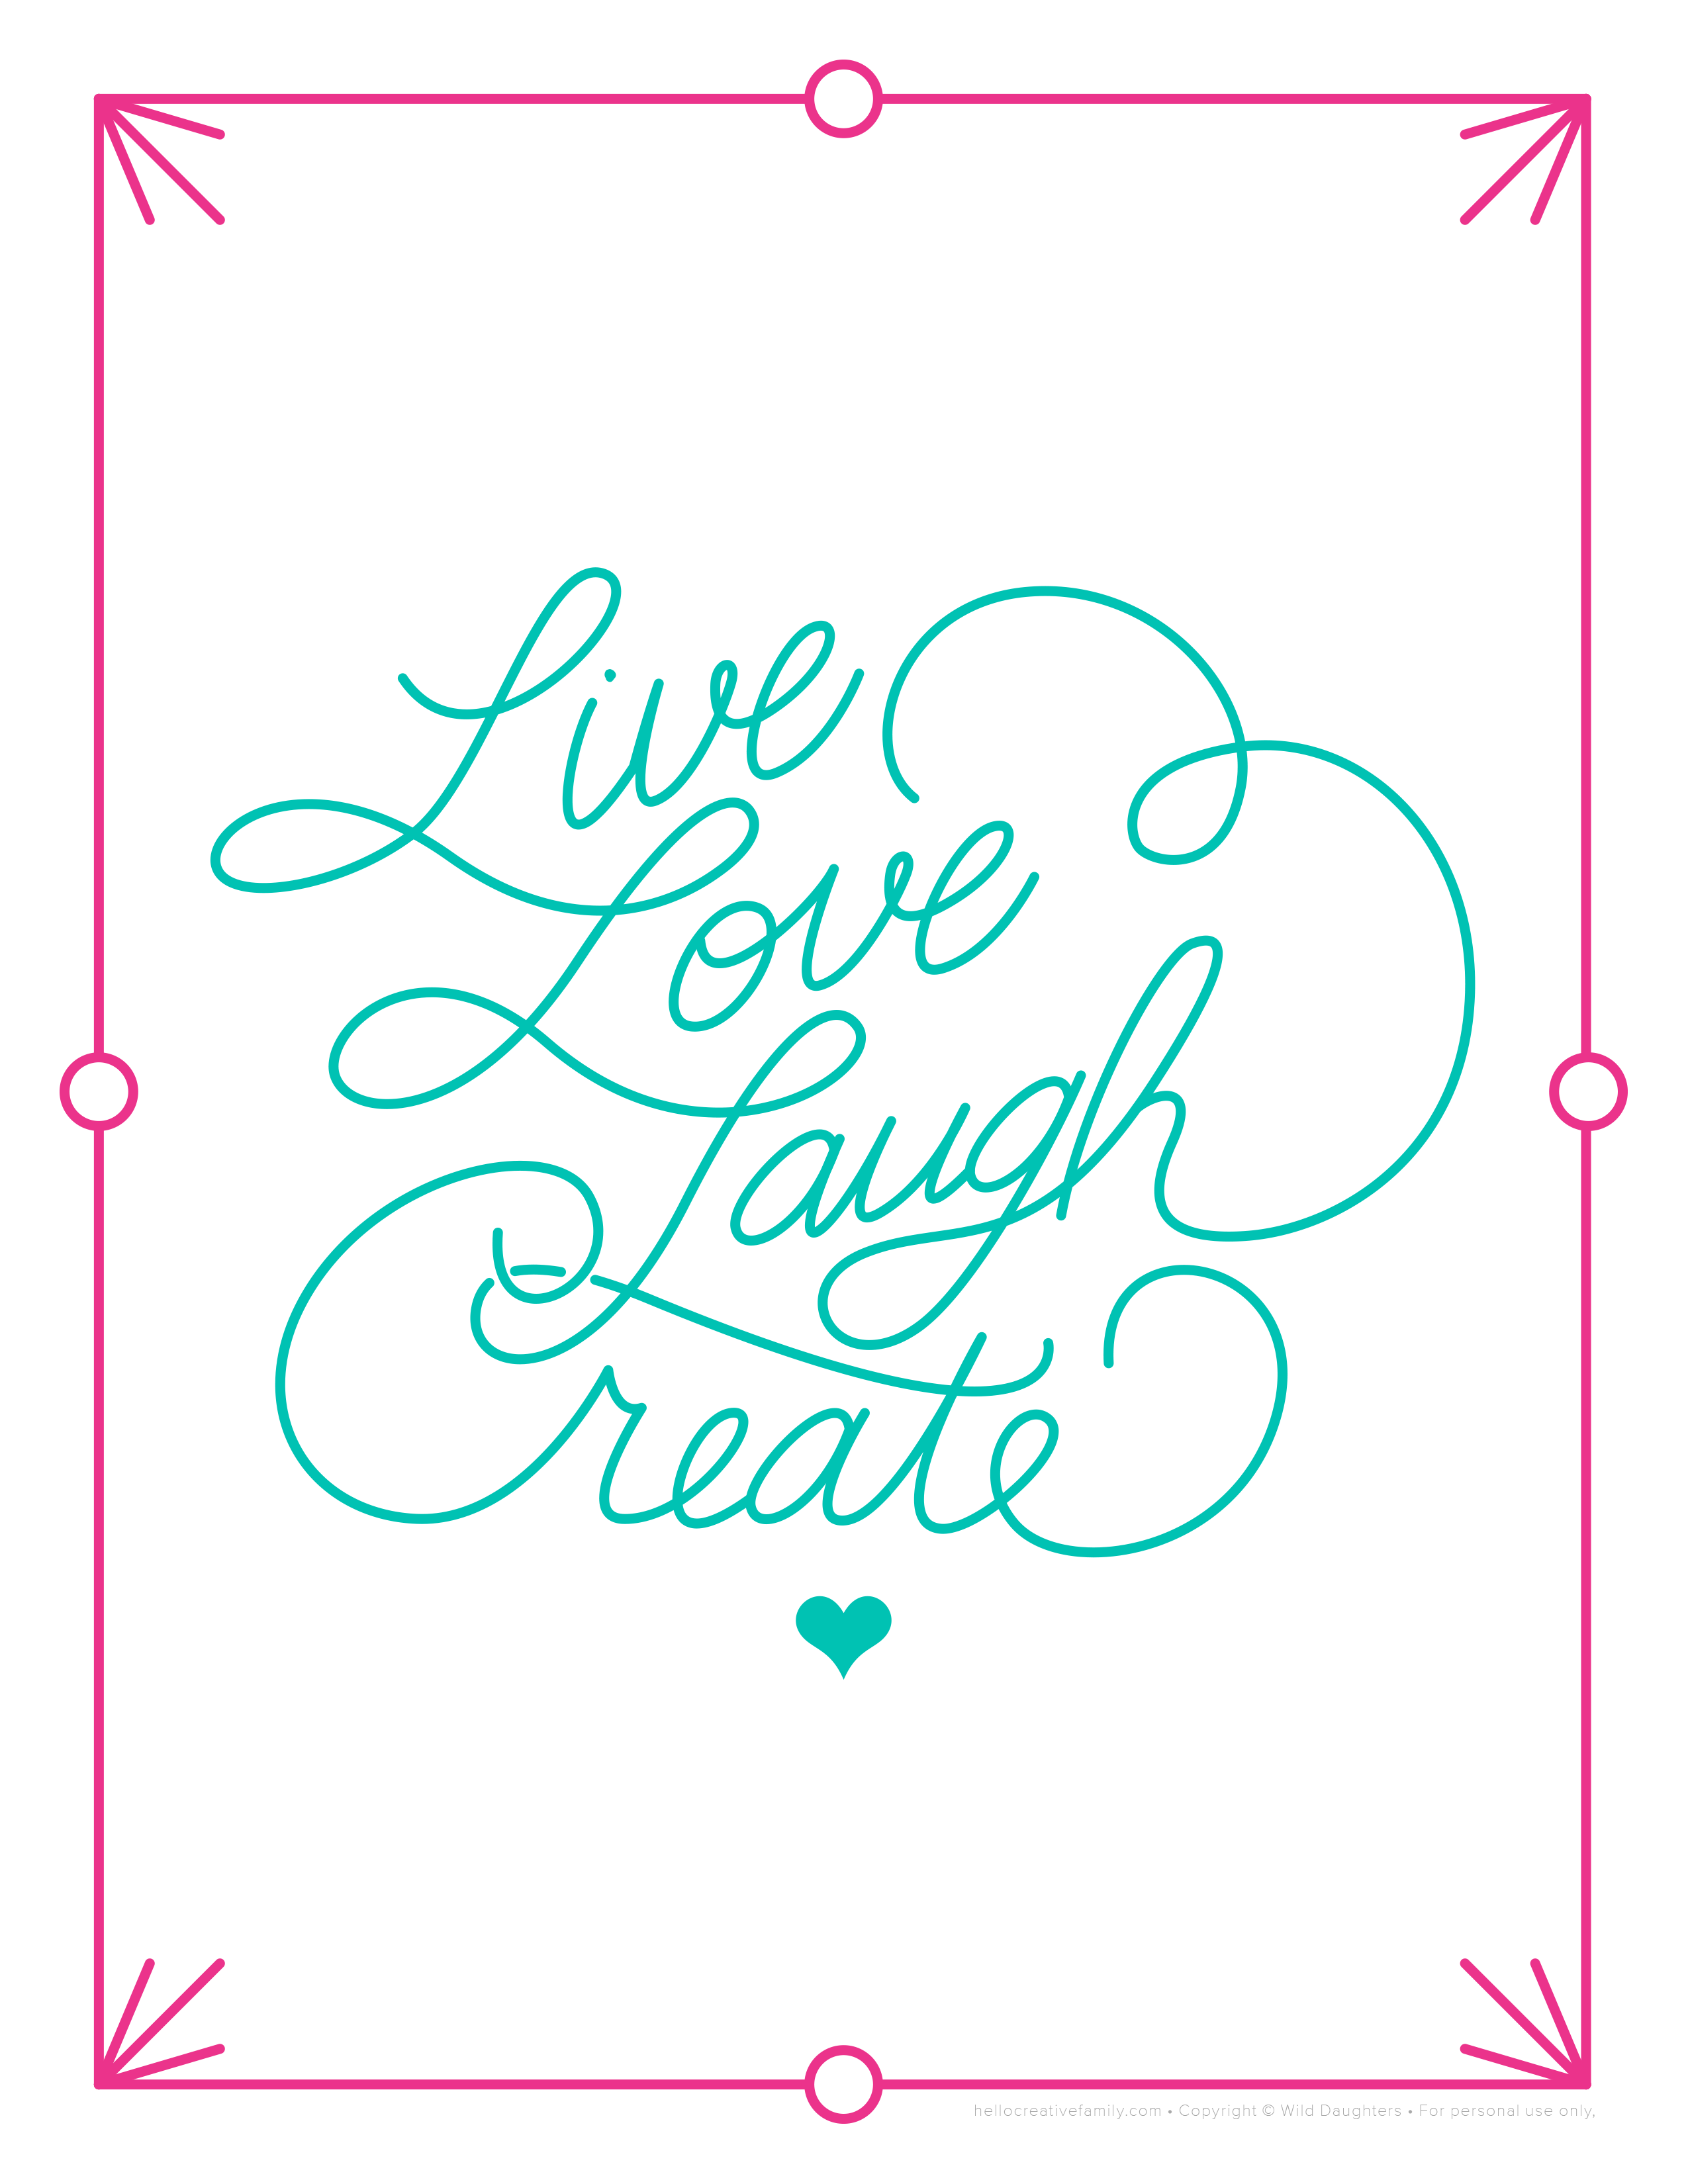 live love photo free download